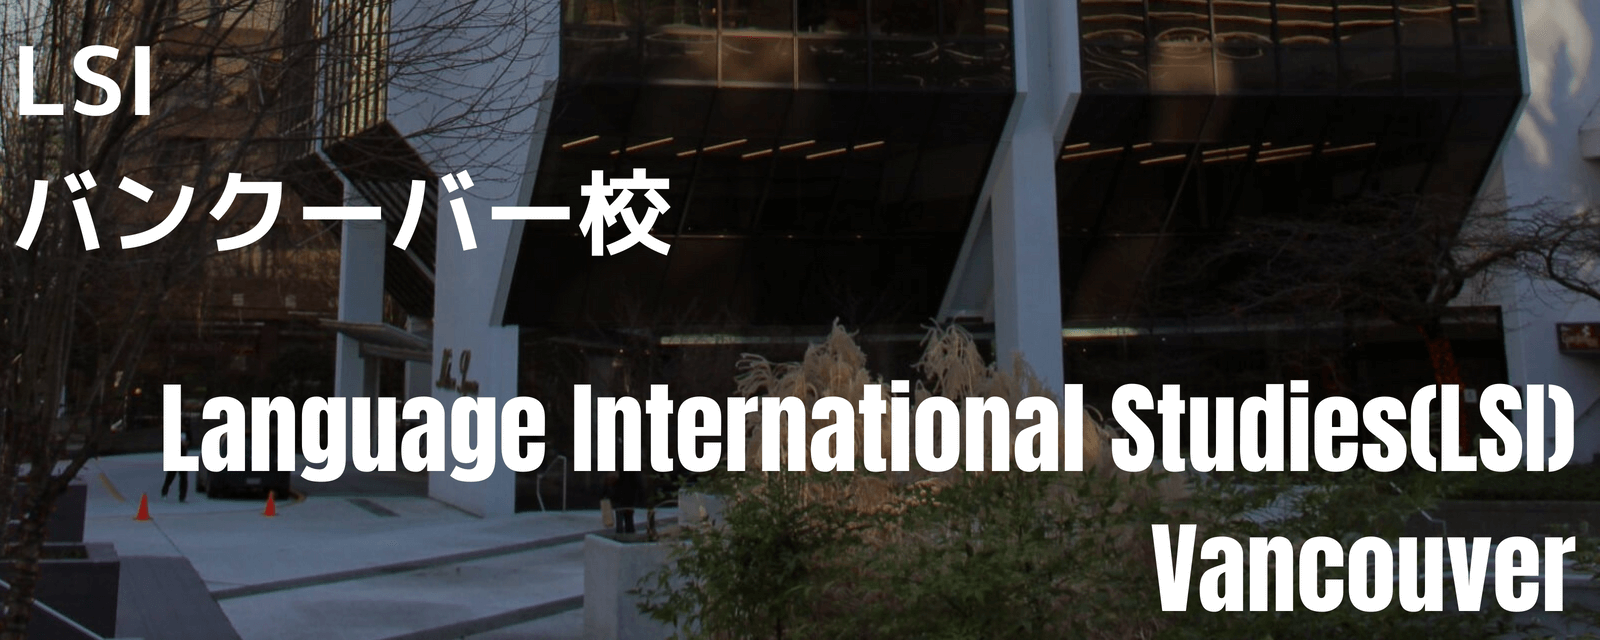 Language International Studies Vancouver